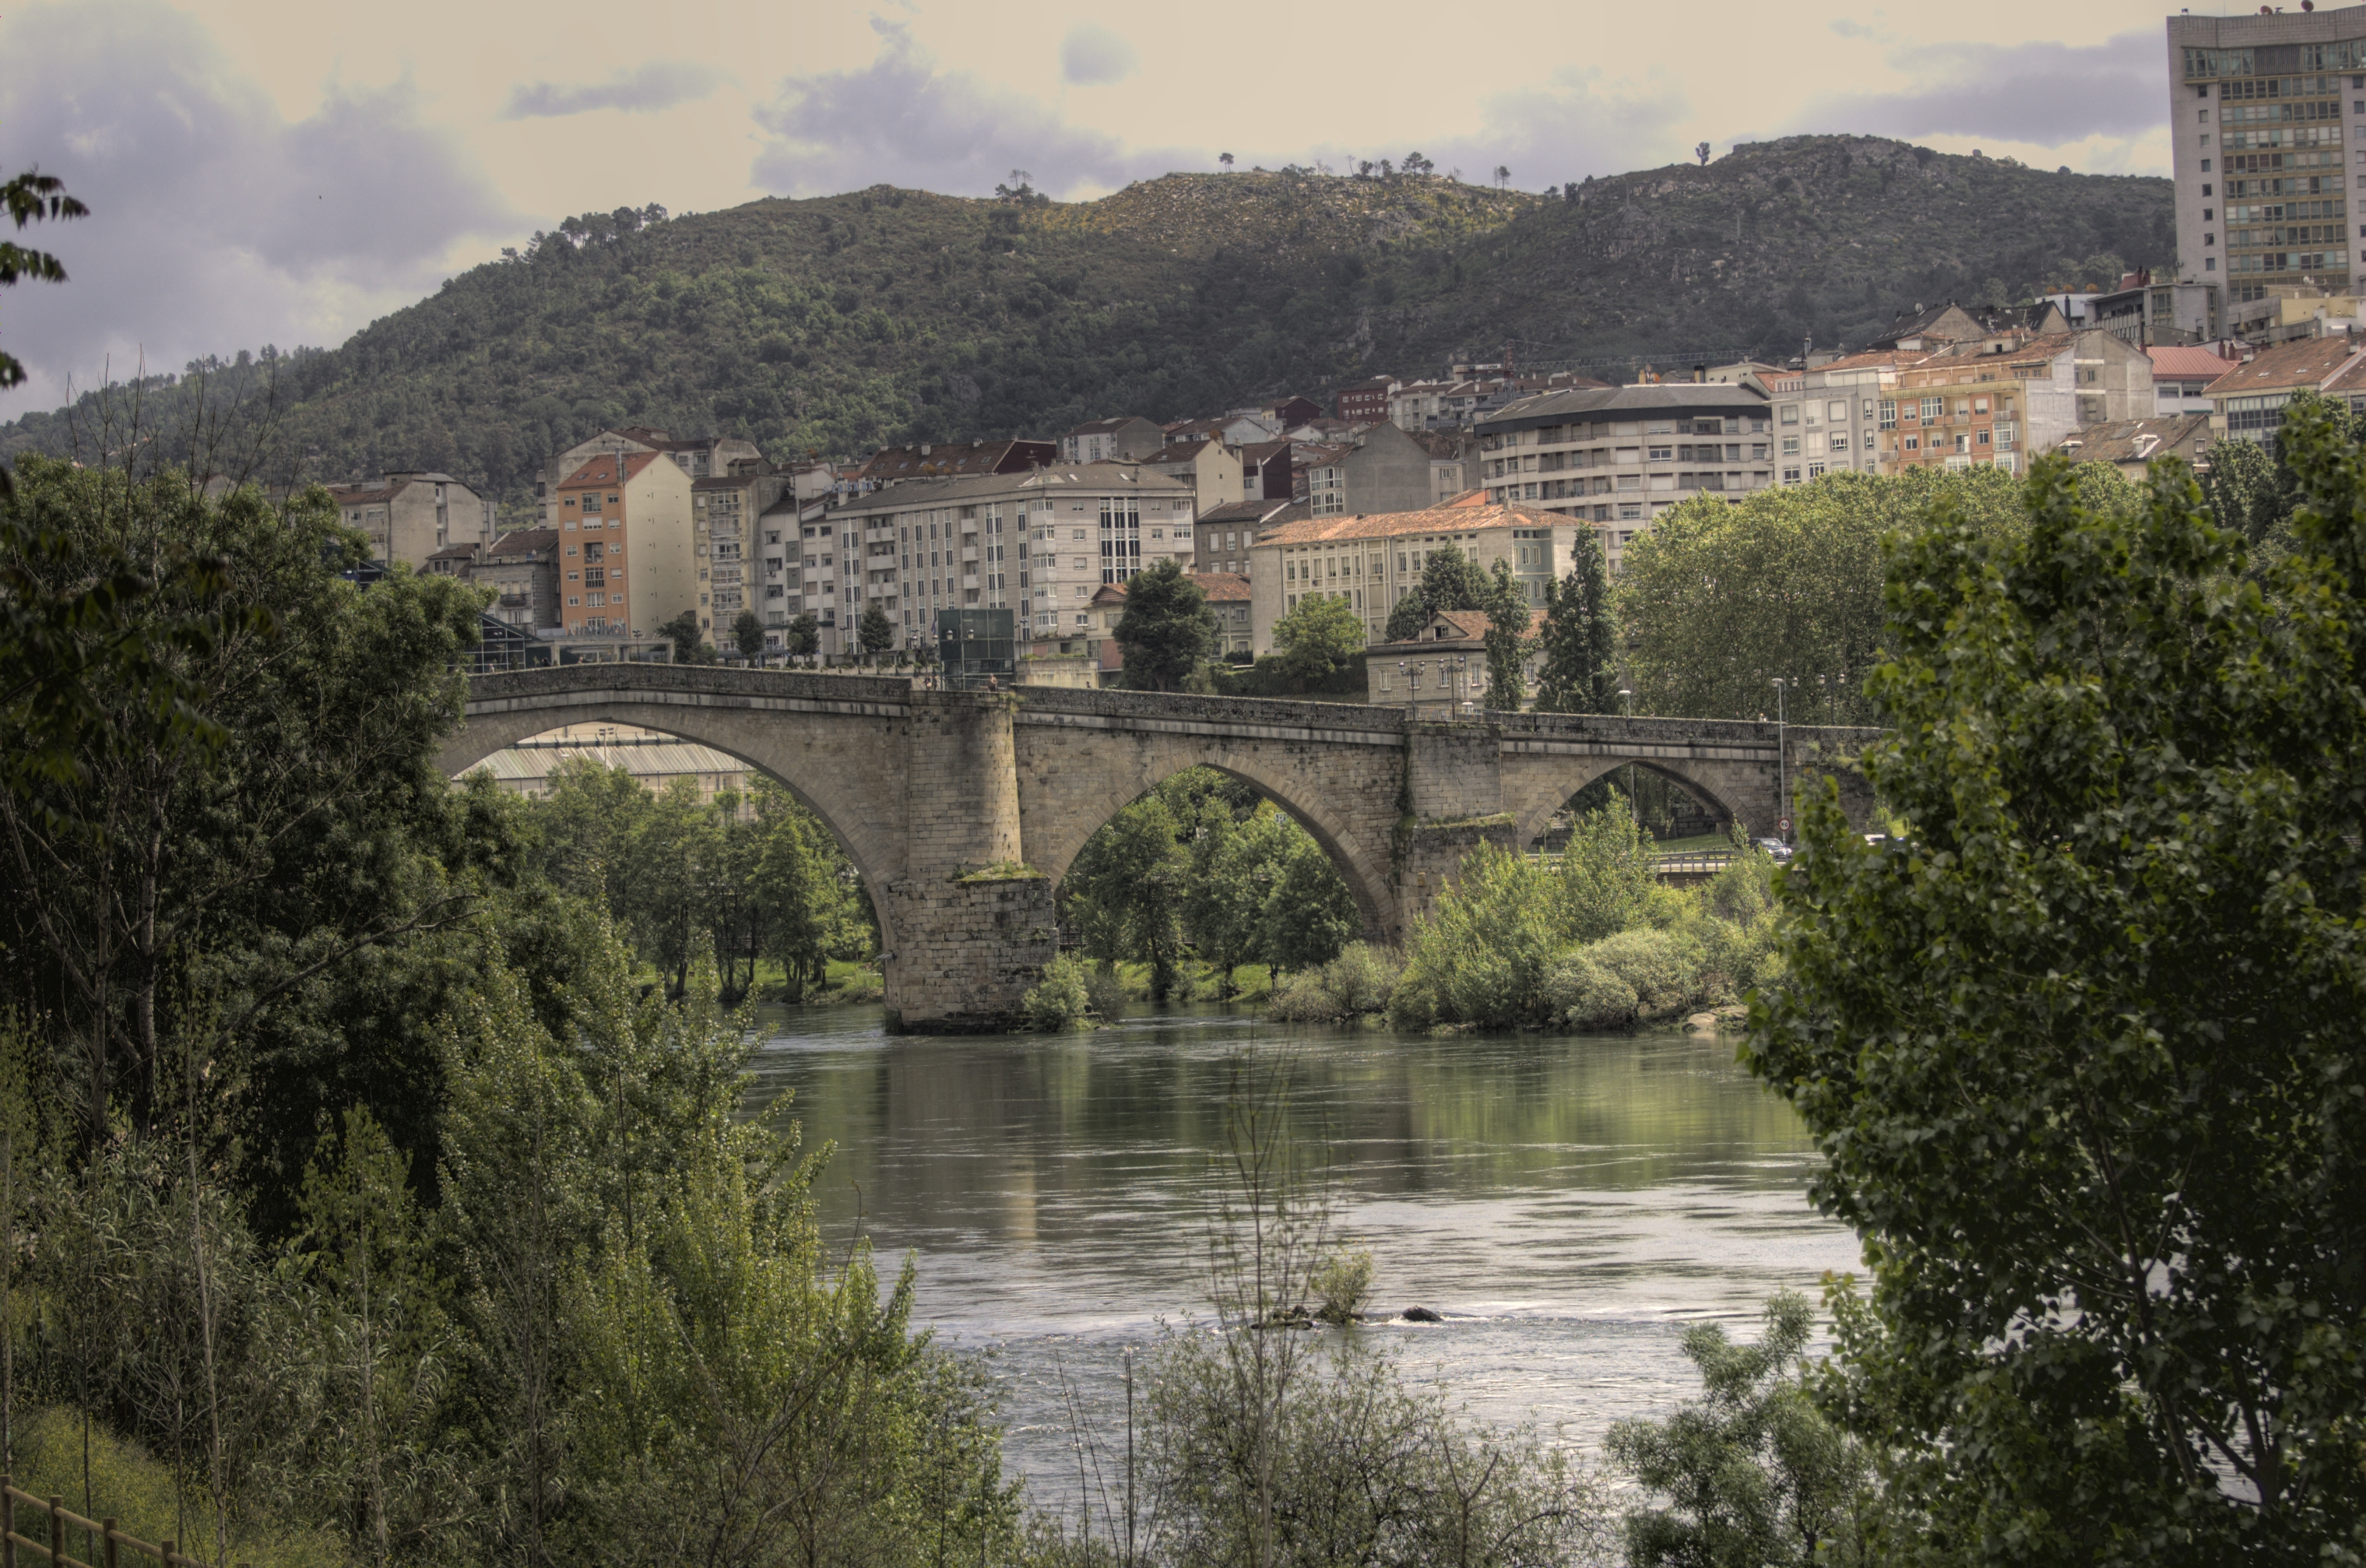 Ourense Spain  city photos gallery : Description Bridge, Ourense Spain , Minho River